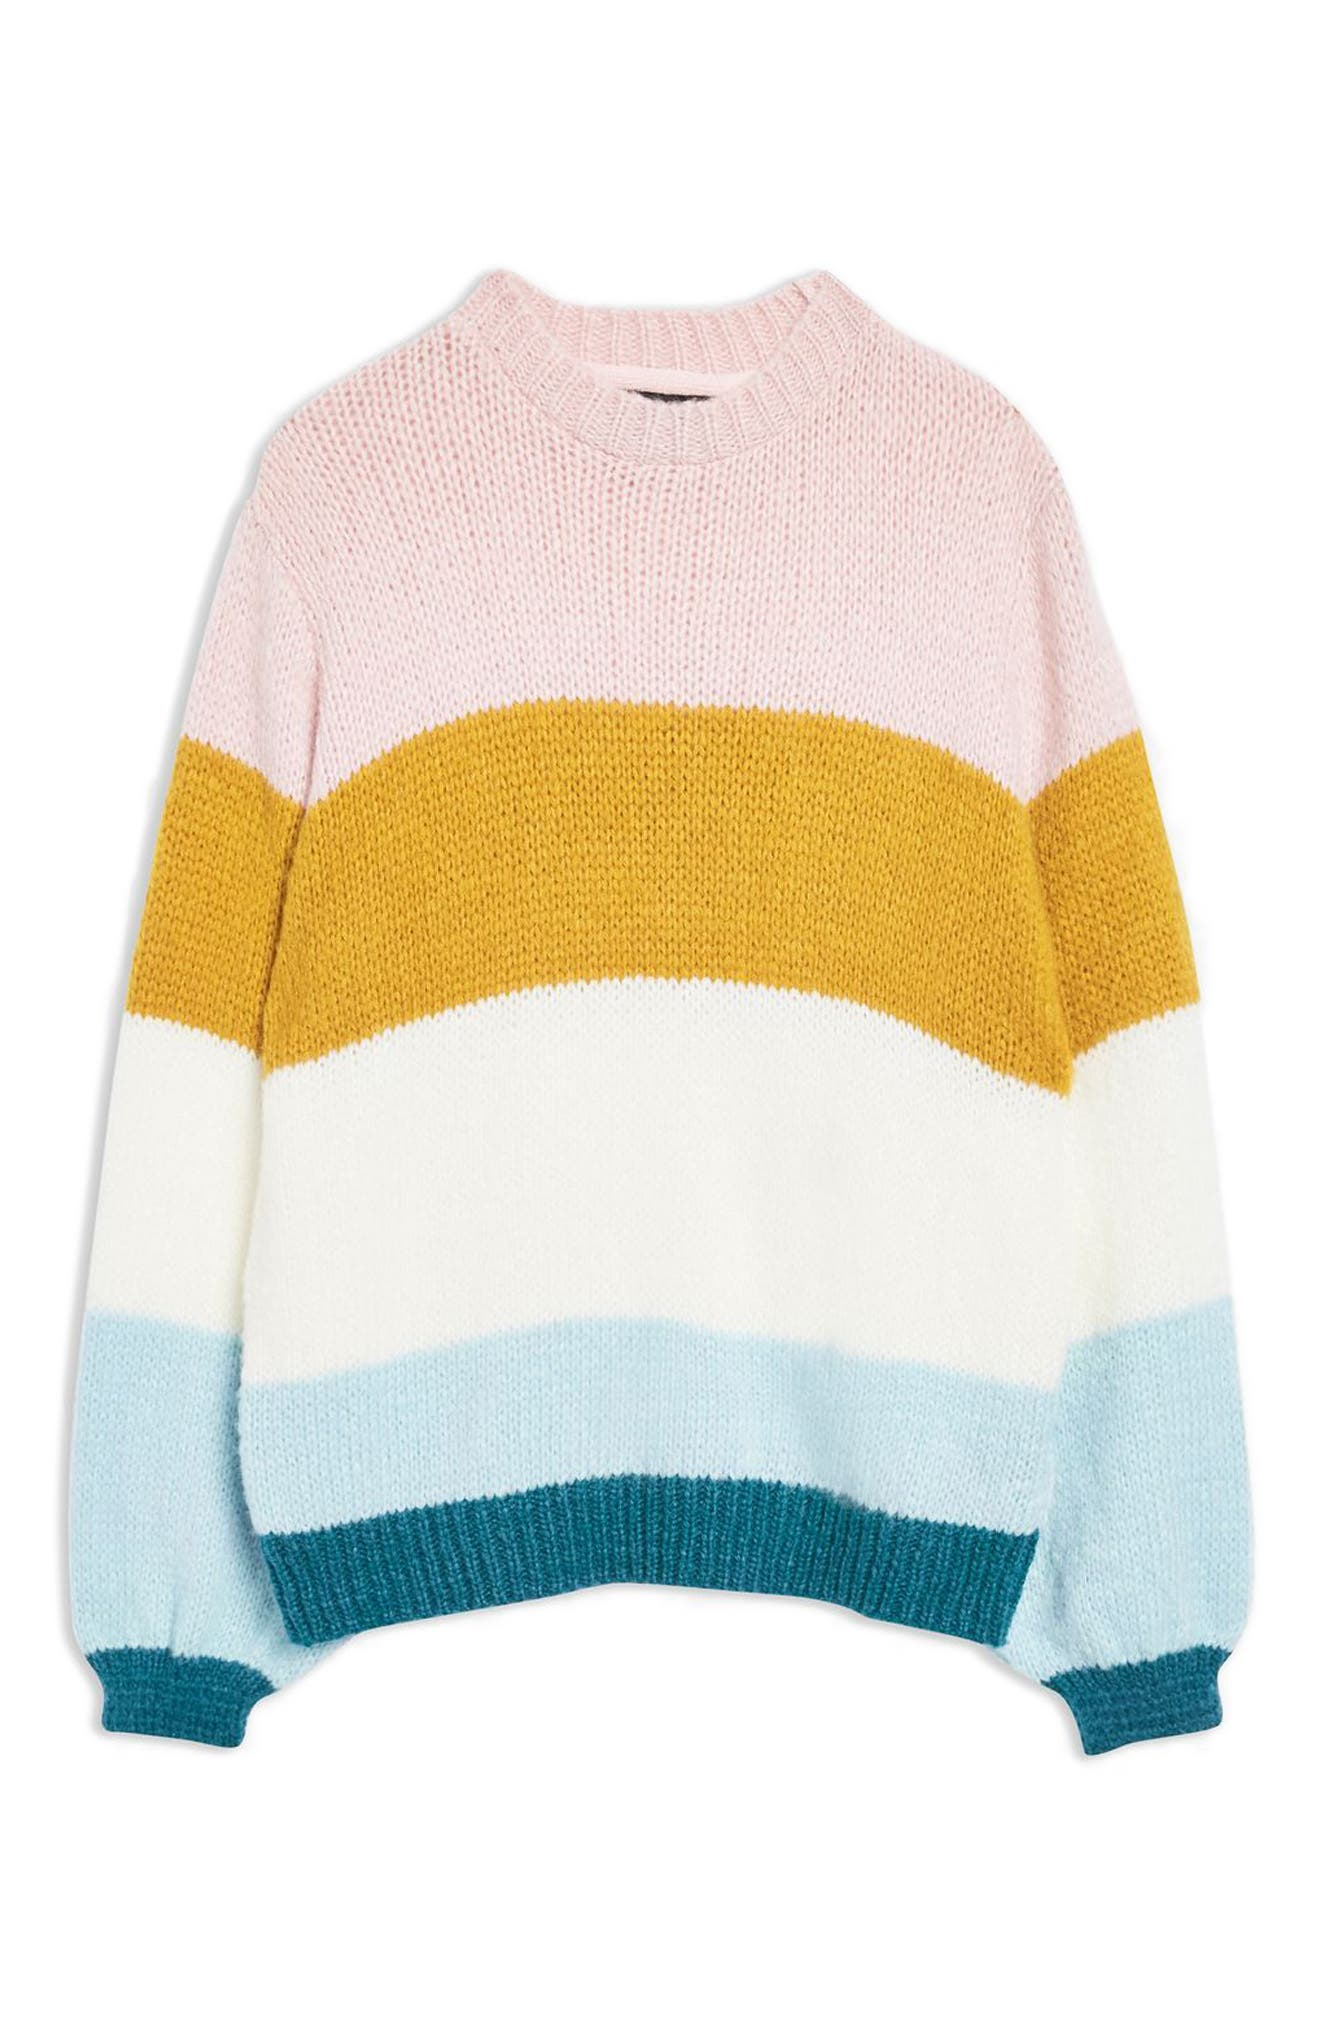 Colorblock Knit Pullover,                             Alternate thumbnail 3, color,                             900